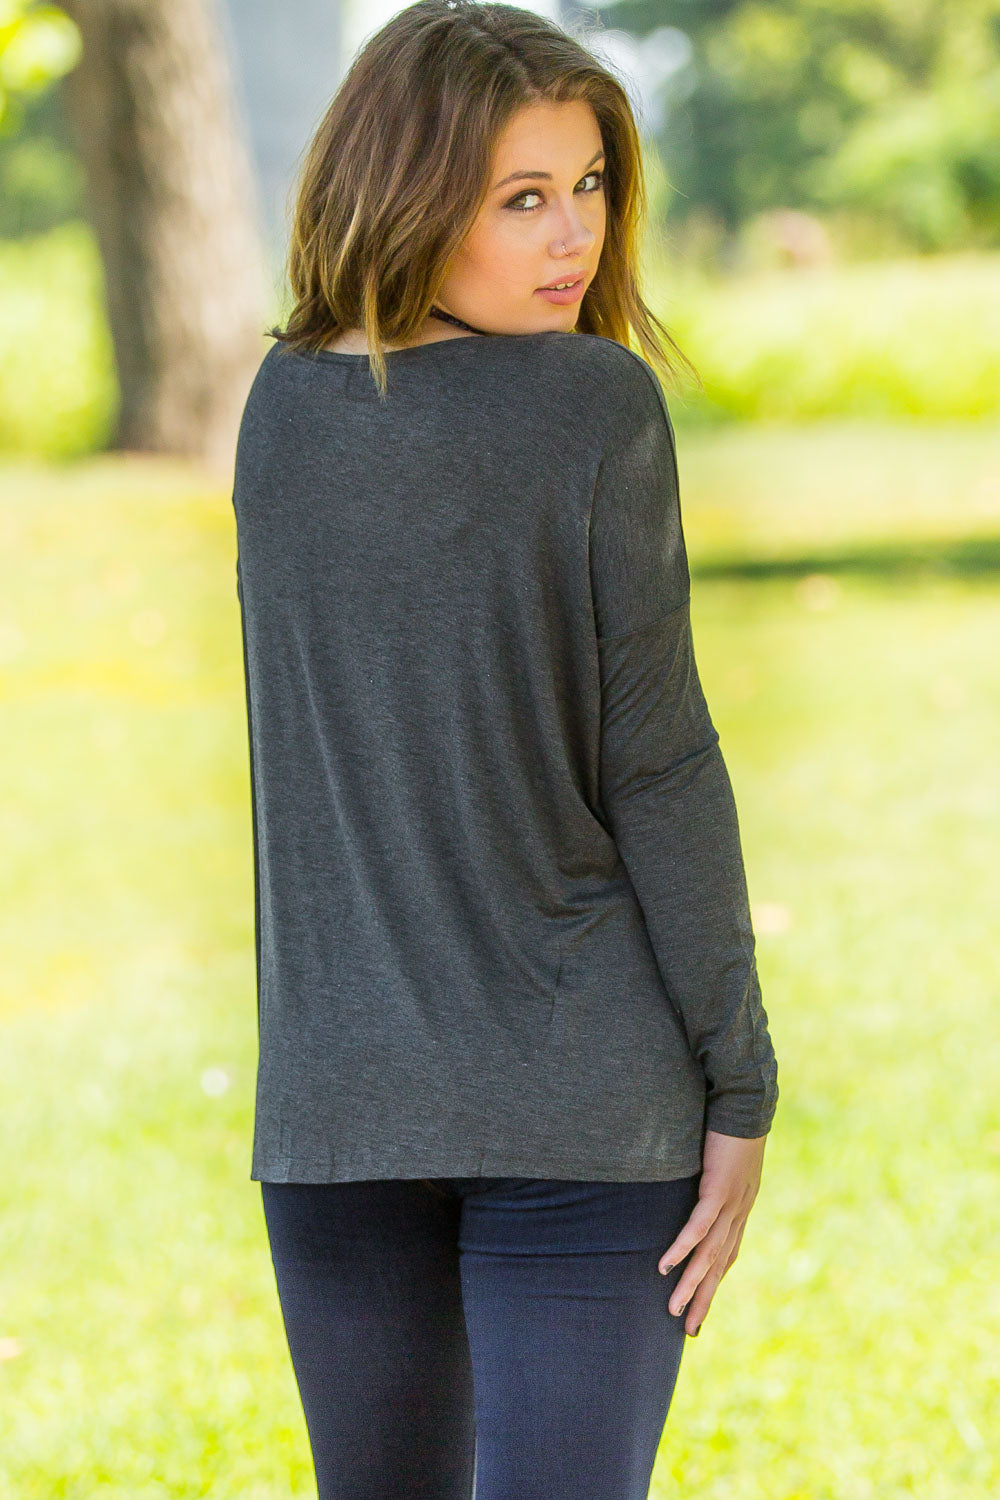 Long Sleeve Piko Top - Dark Heather Grey - Piko Clothing